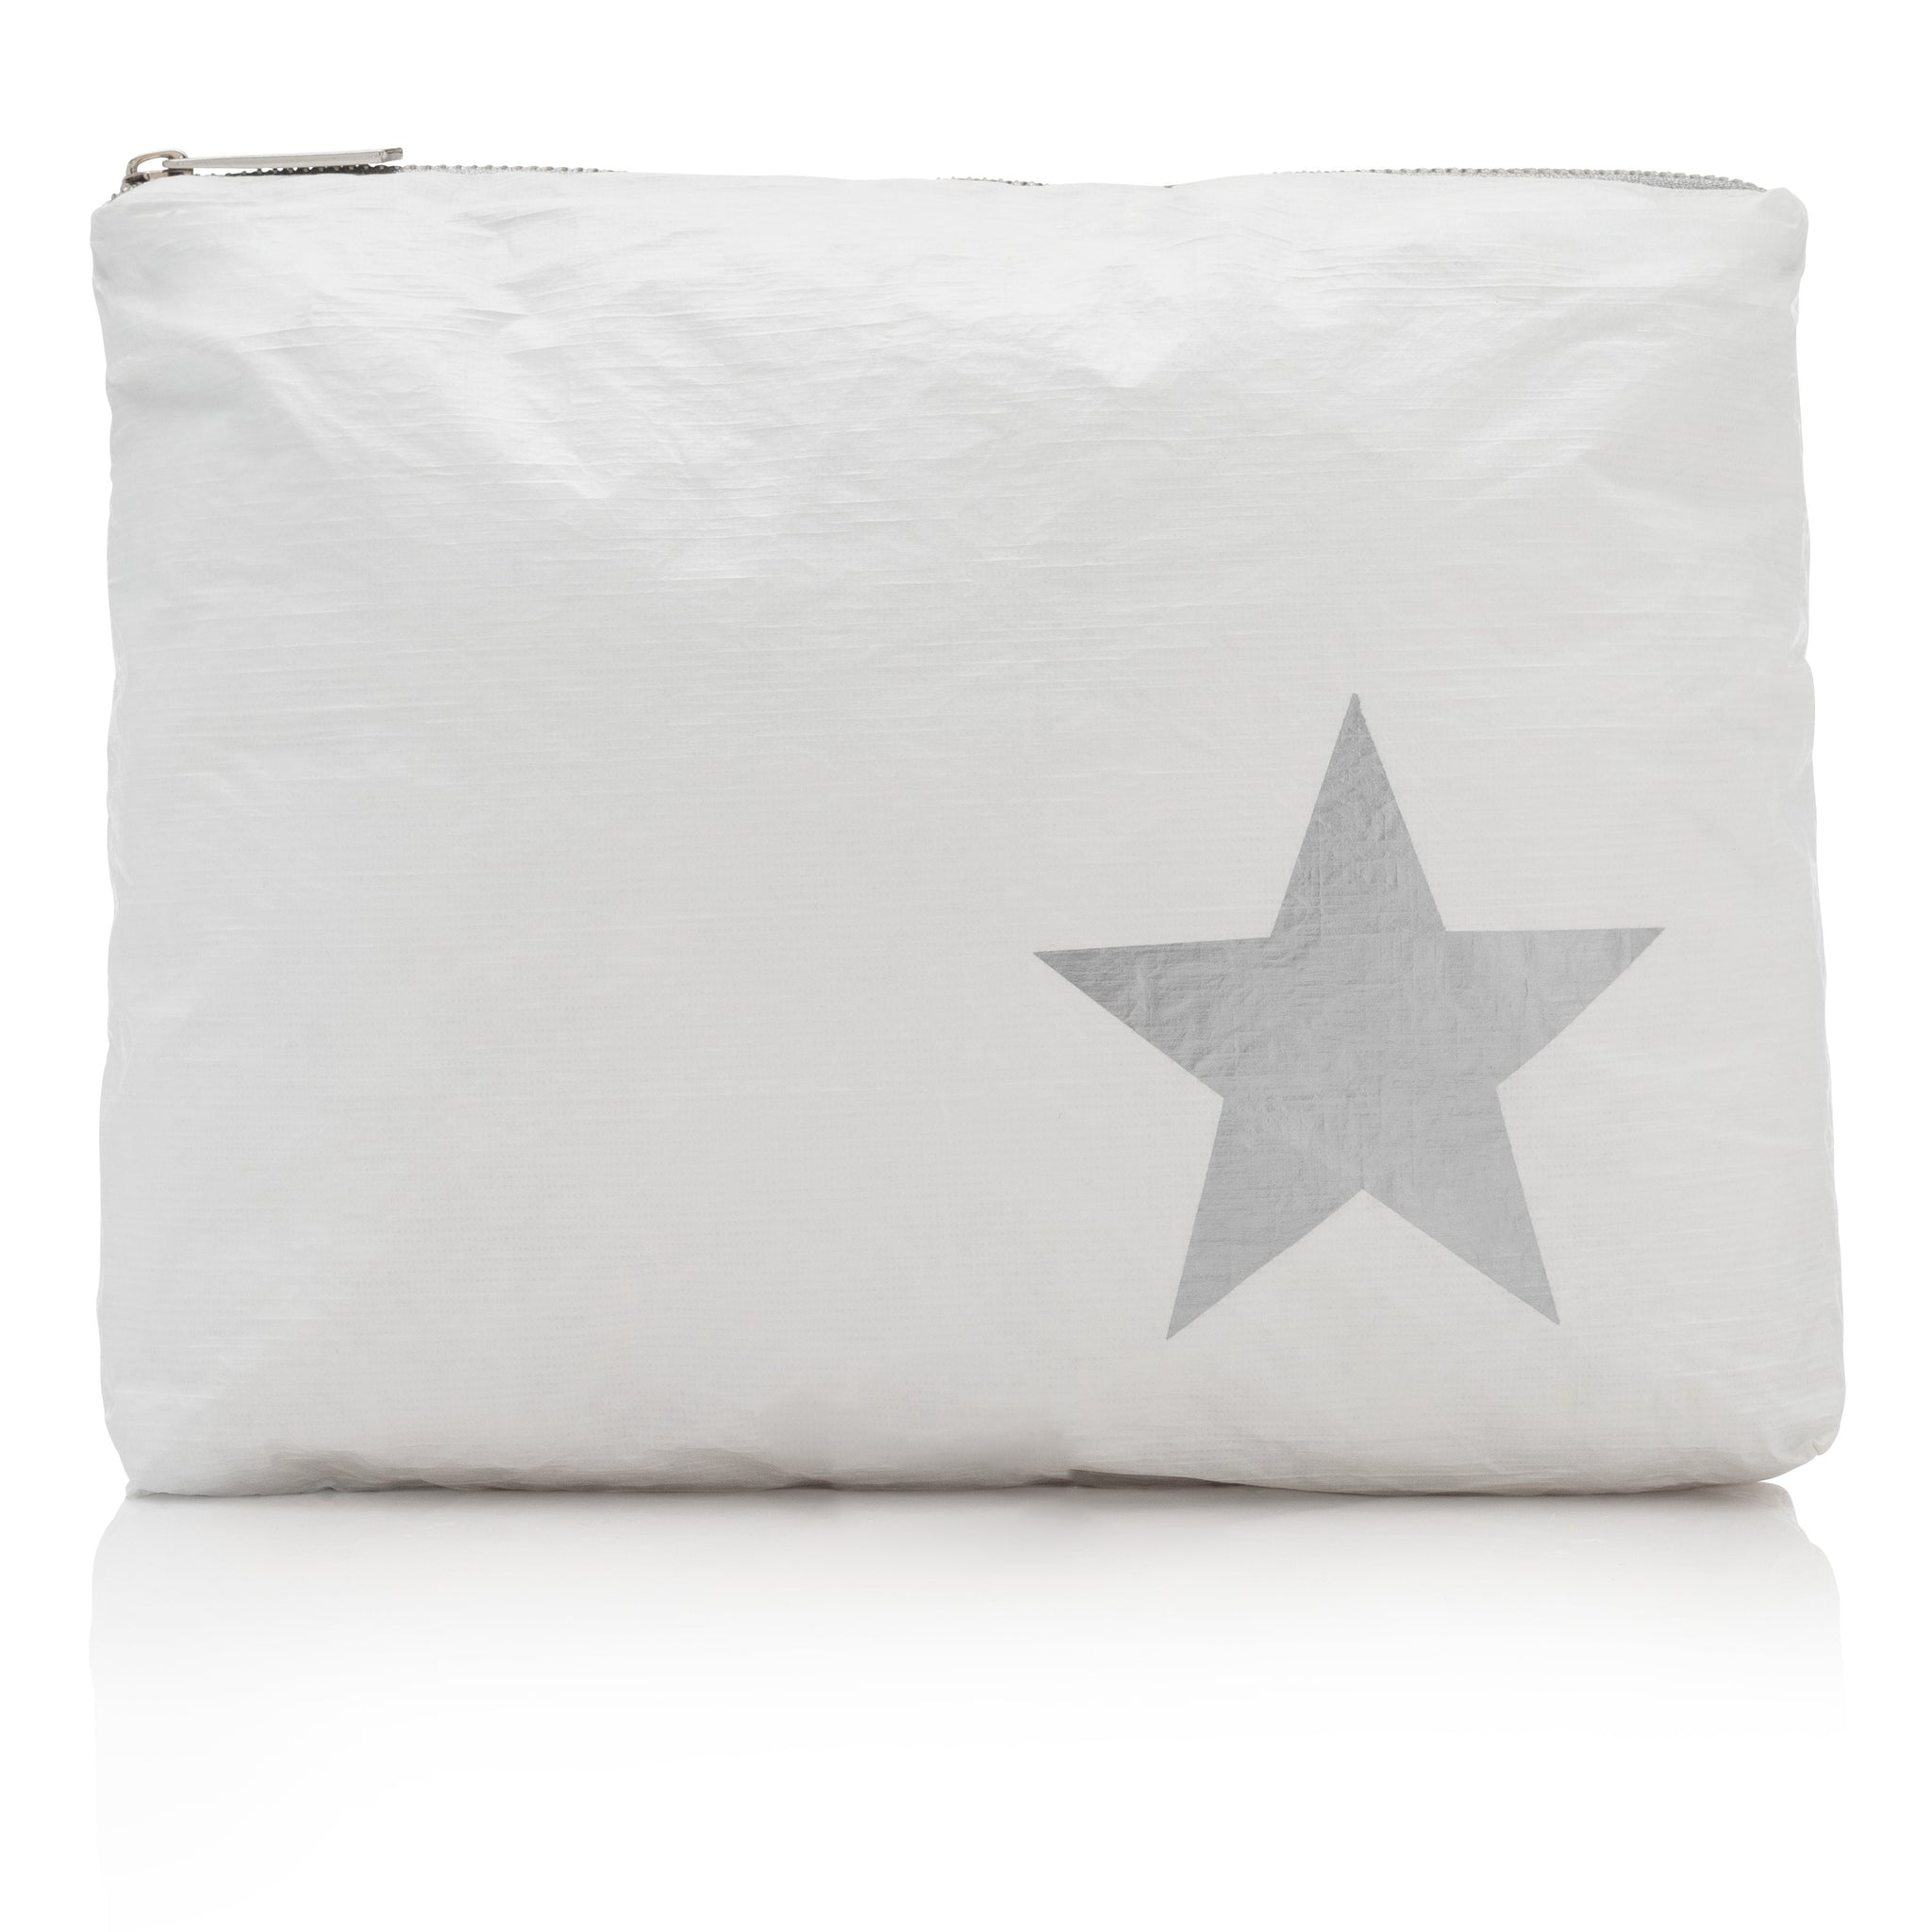 Medium Pack - White with a Metallic Silver Star